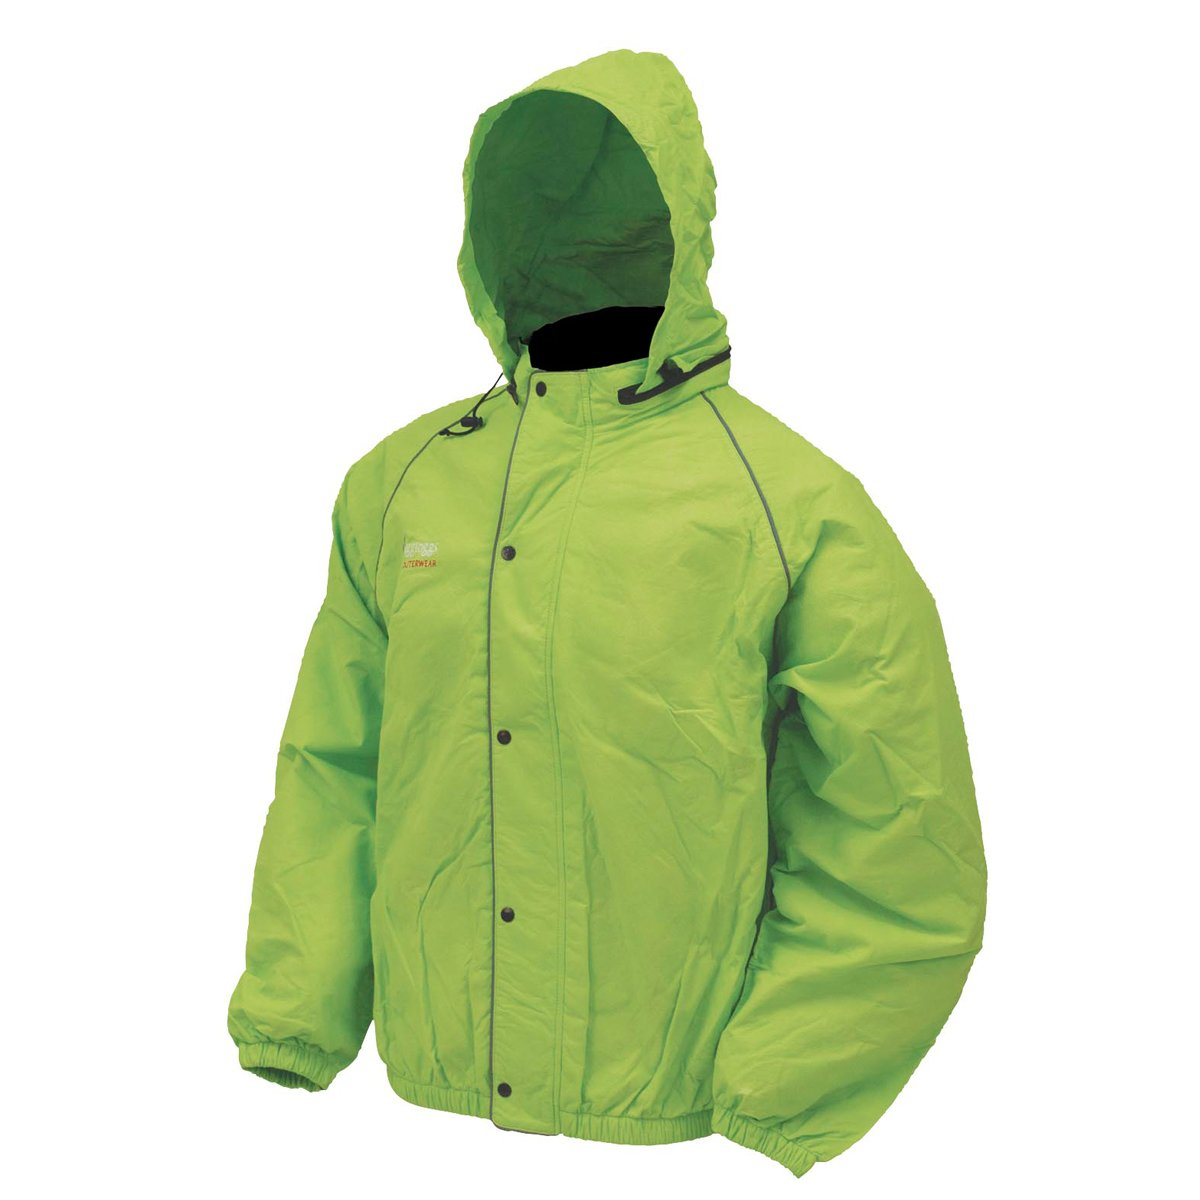 Large Lime Green Frogg Toggs FT63132-48LG Road Toad Jacket Waterproof